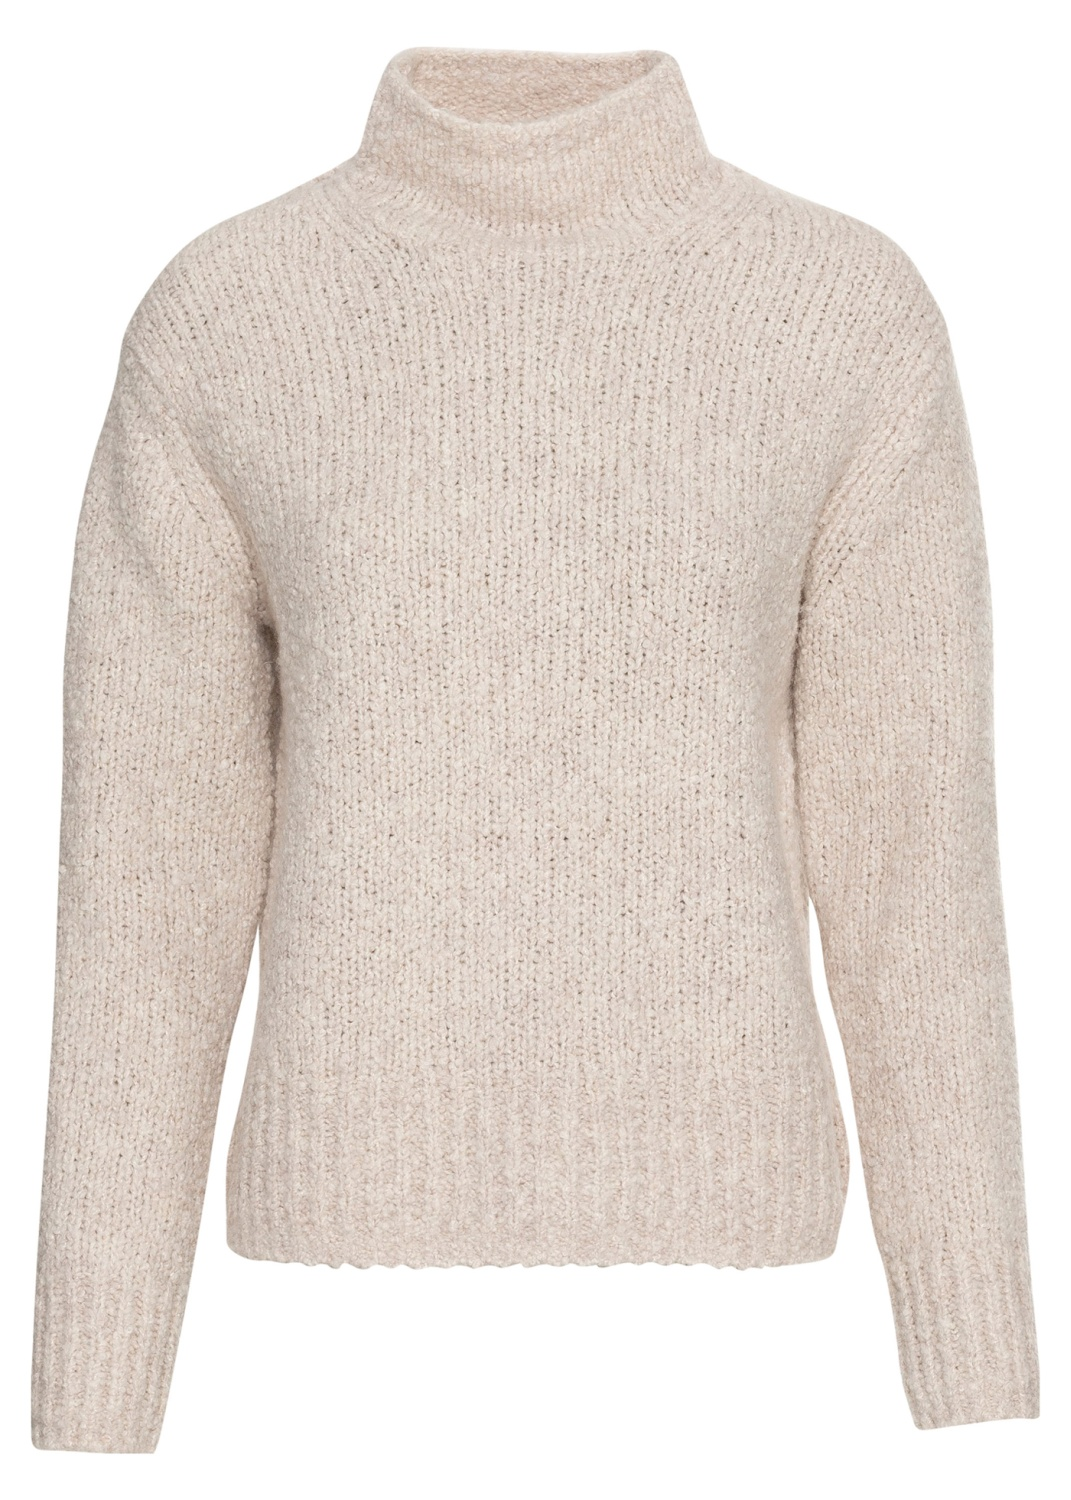 TEXTURED FUNNEL NK PULLOVER image number 0